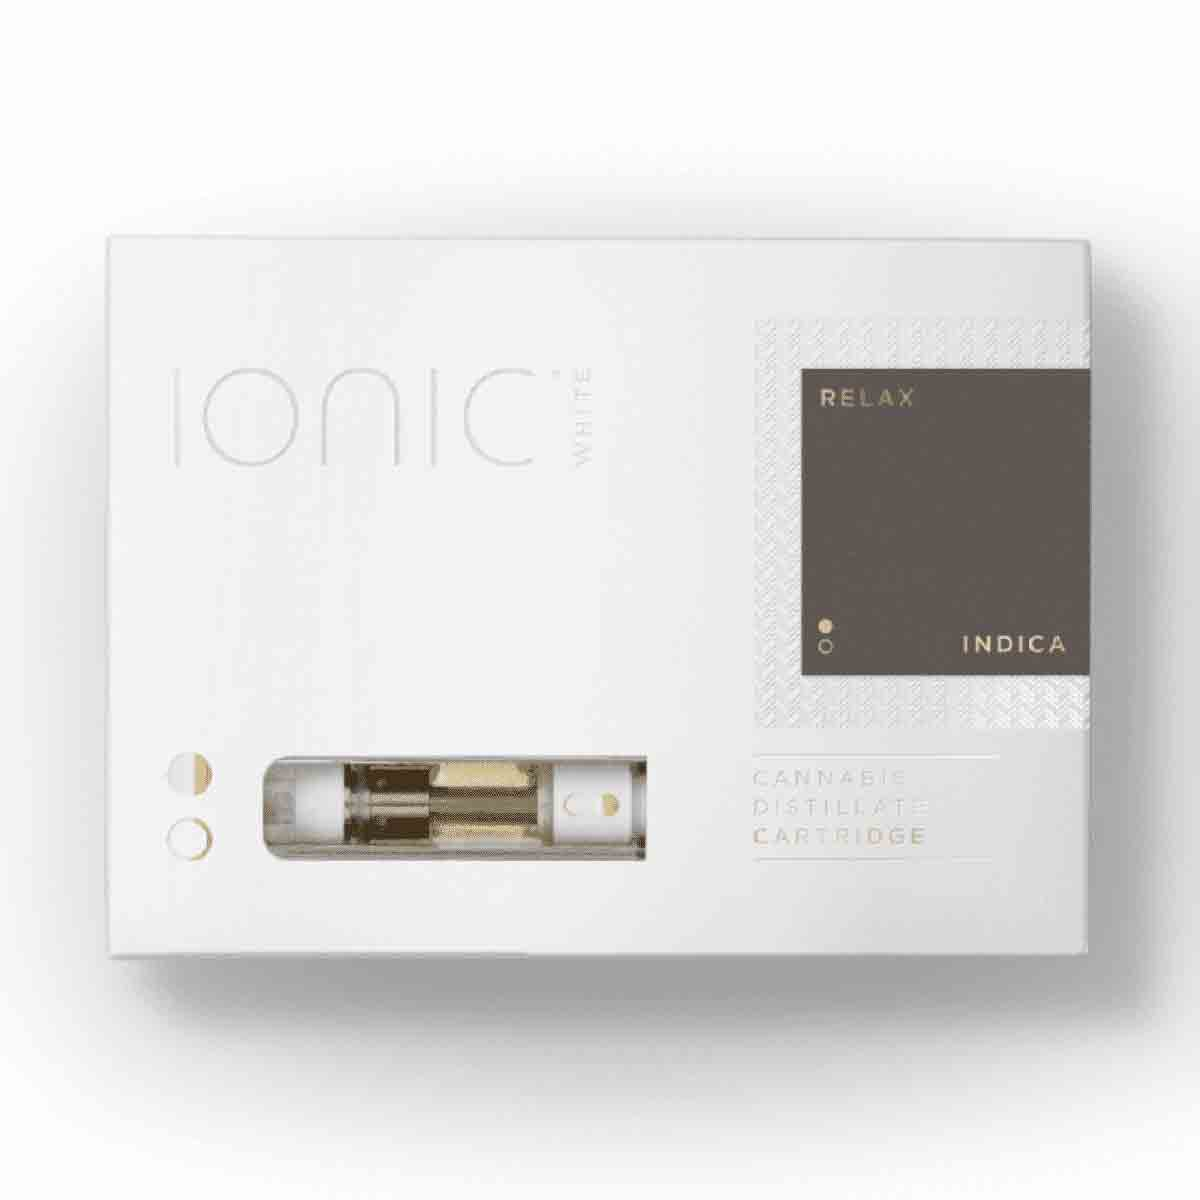 Ionic Purple Punch cannabis oil Cartridge